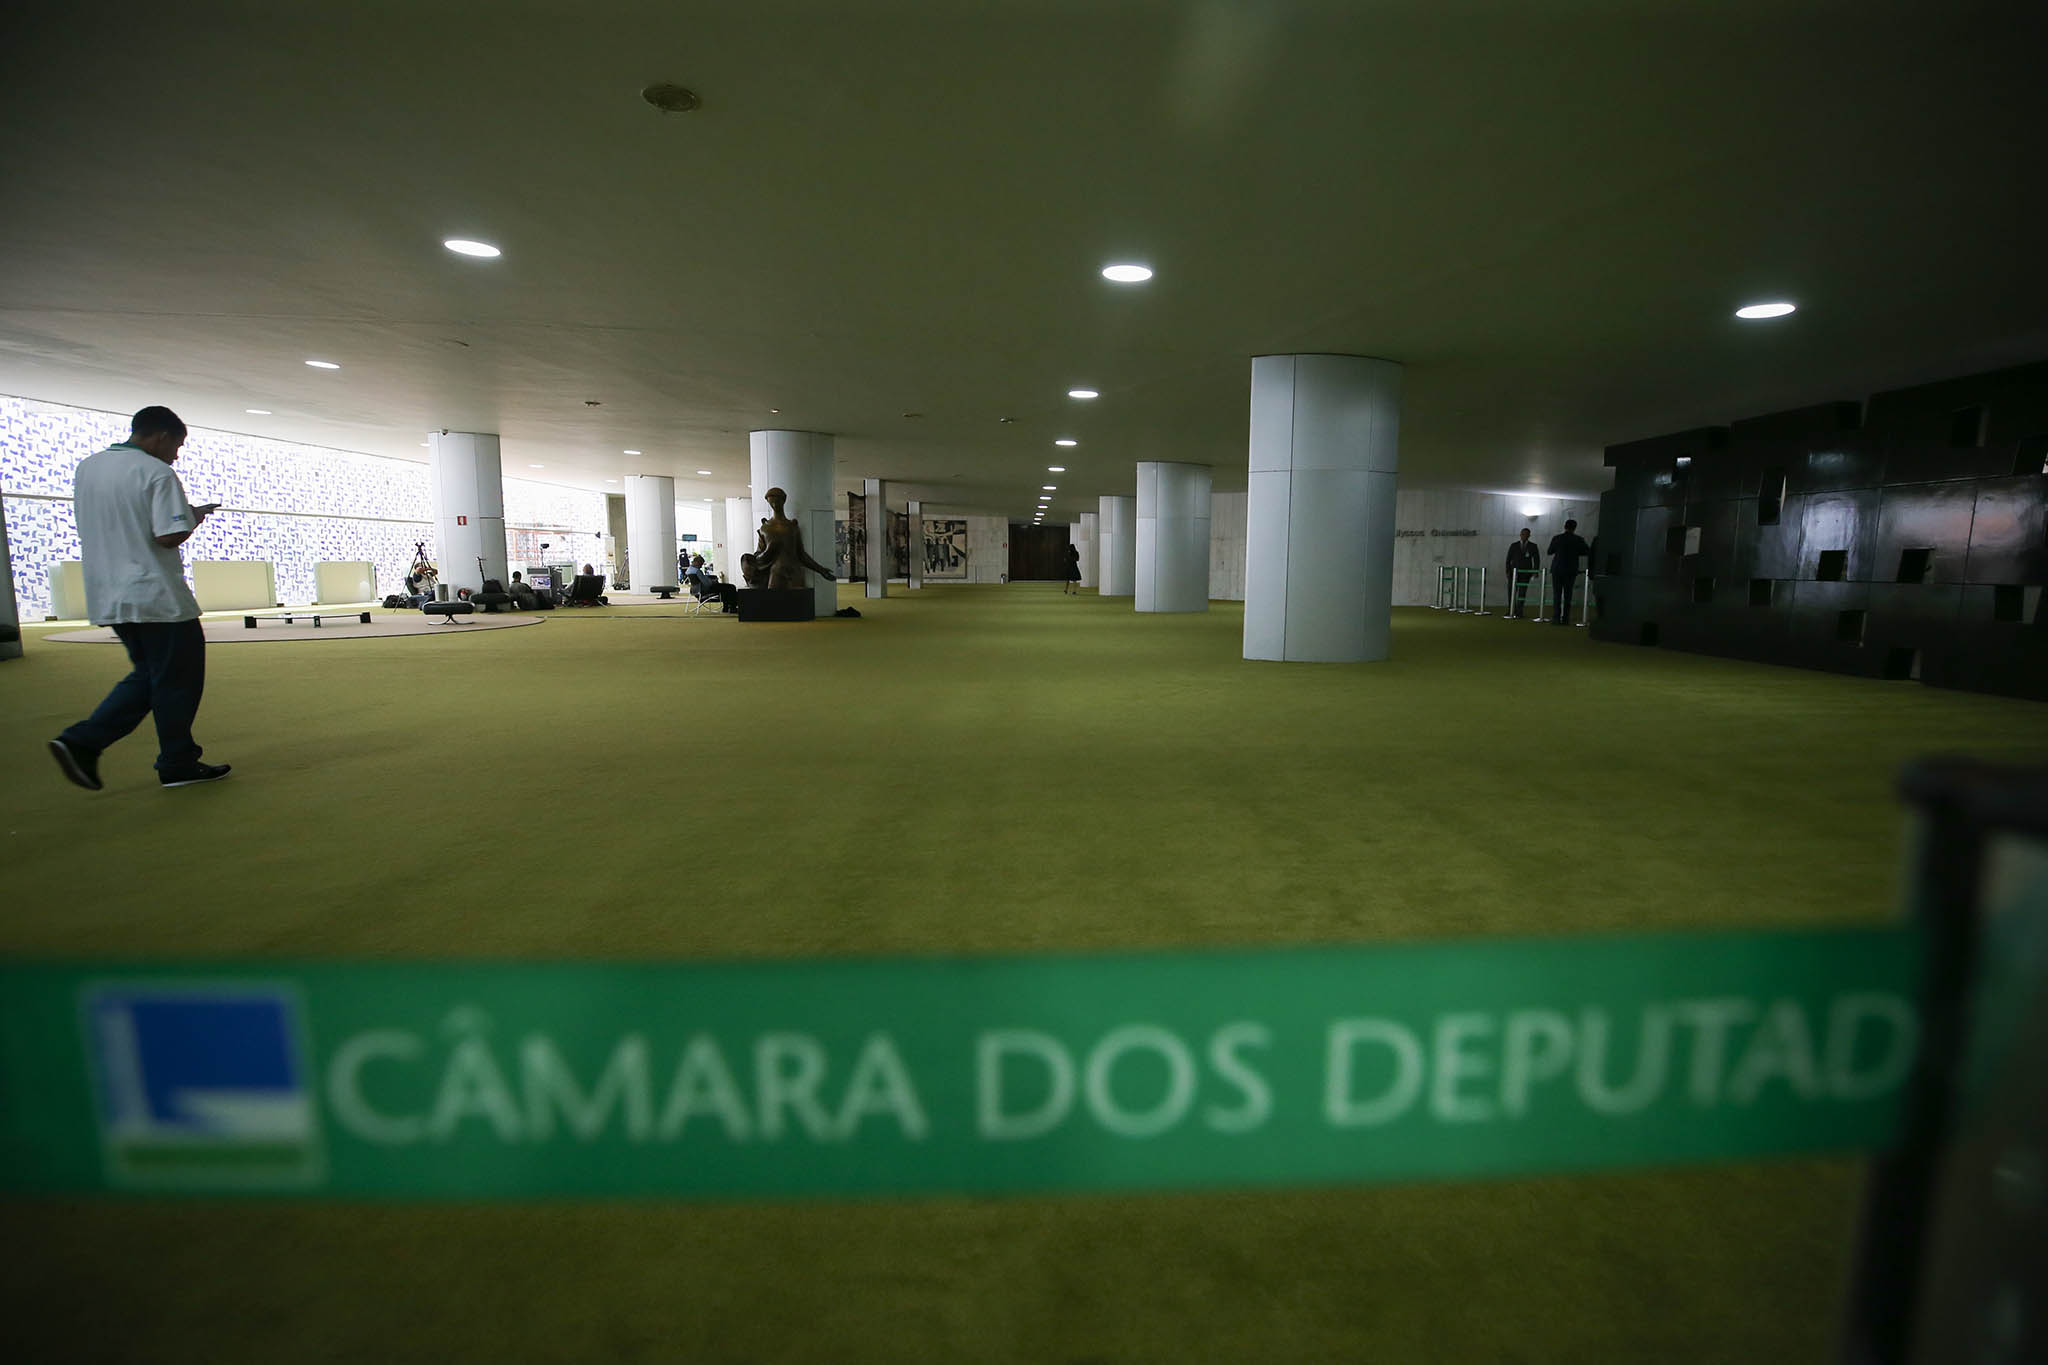 Covid-19 forces Brazil's Congress into de facto recess